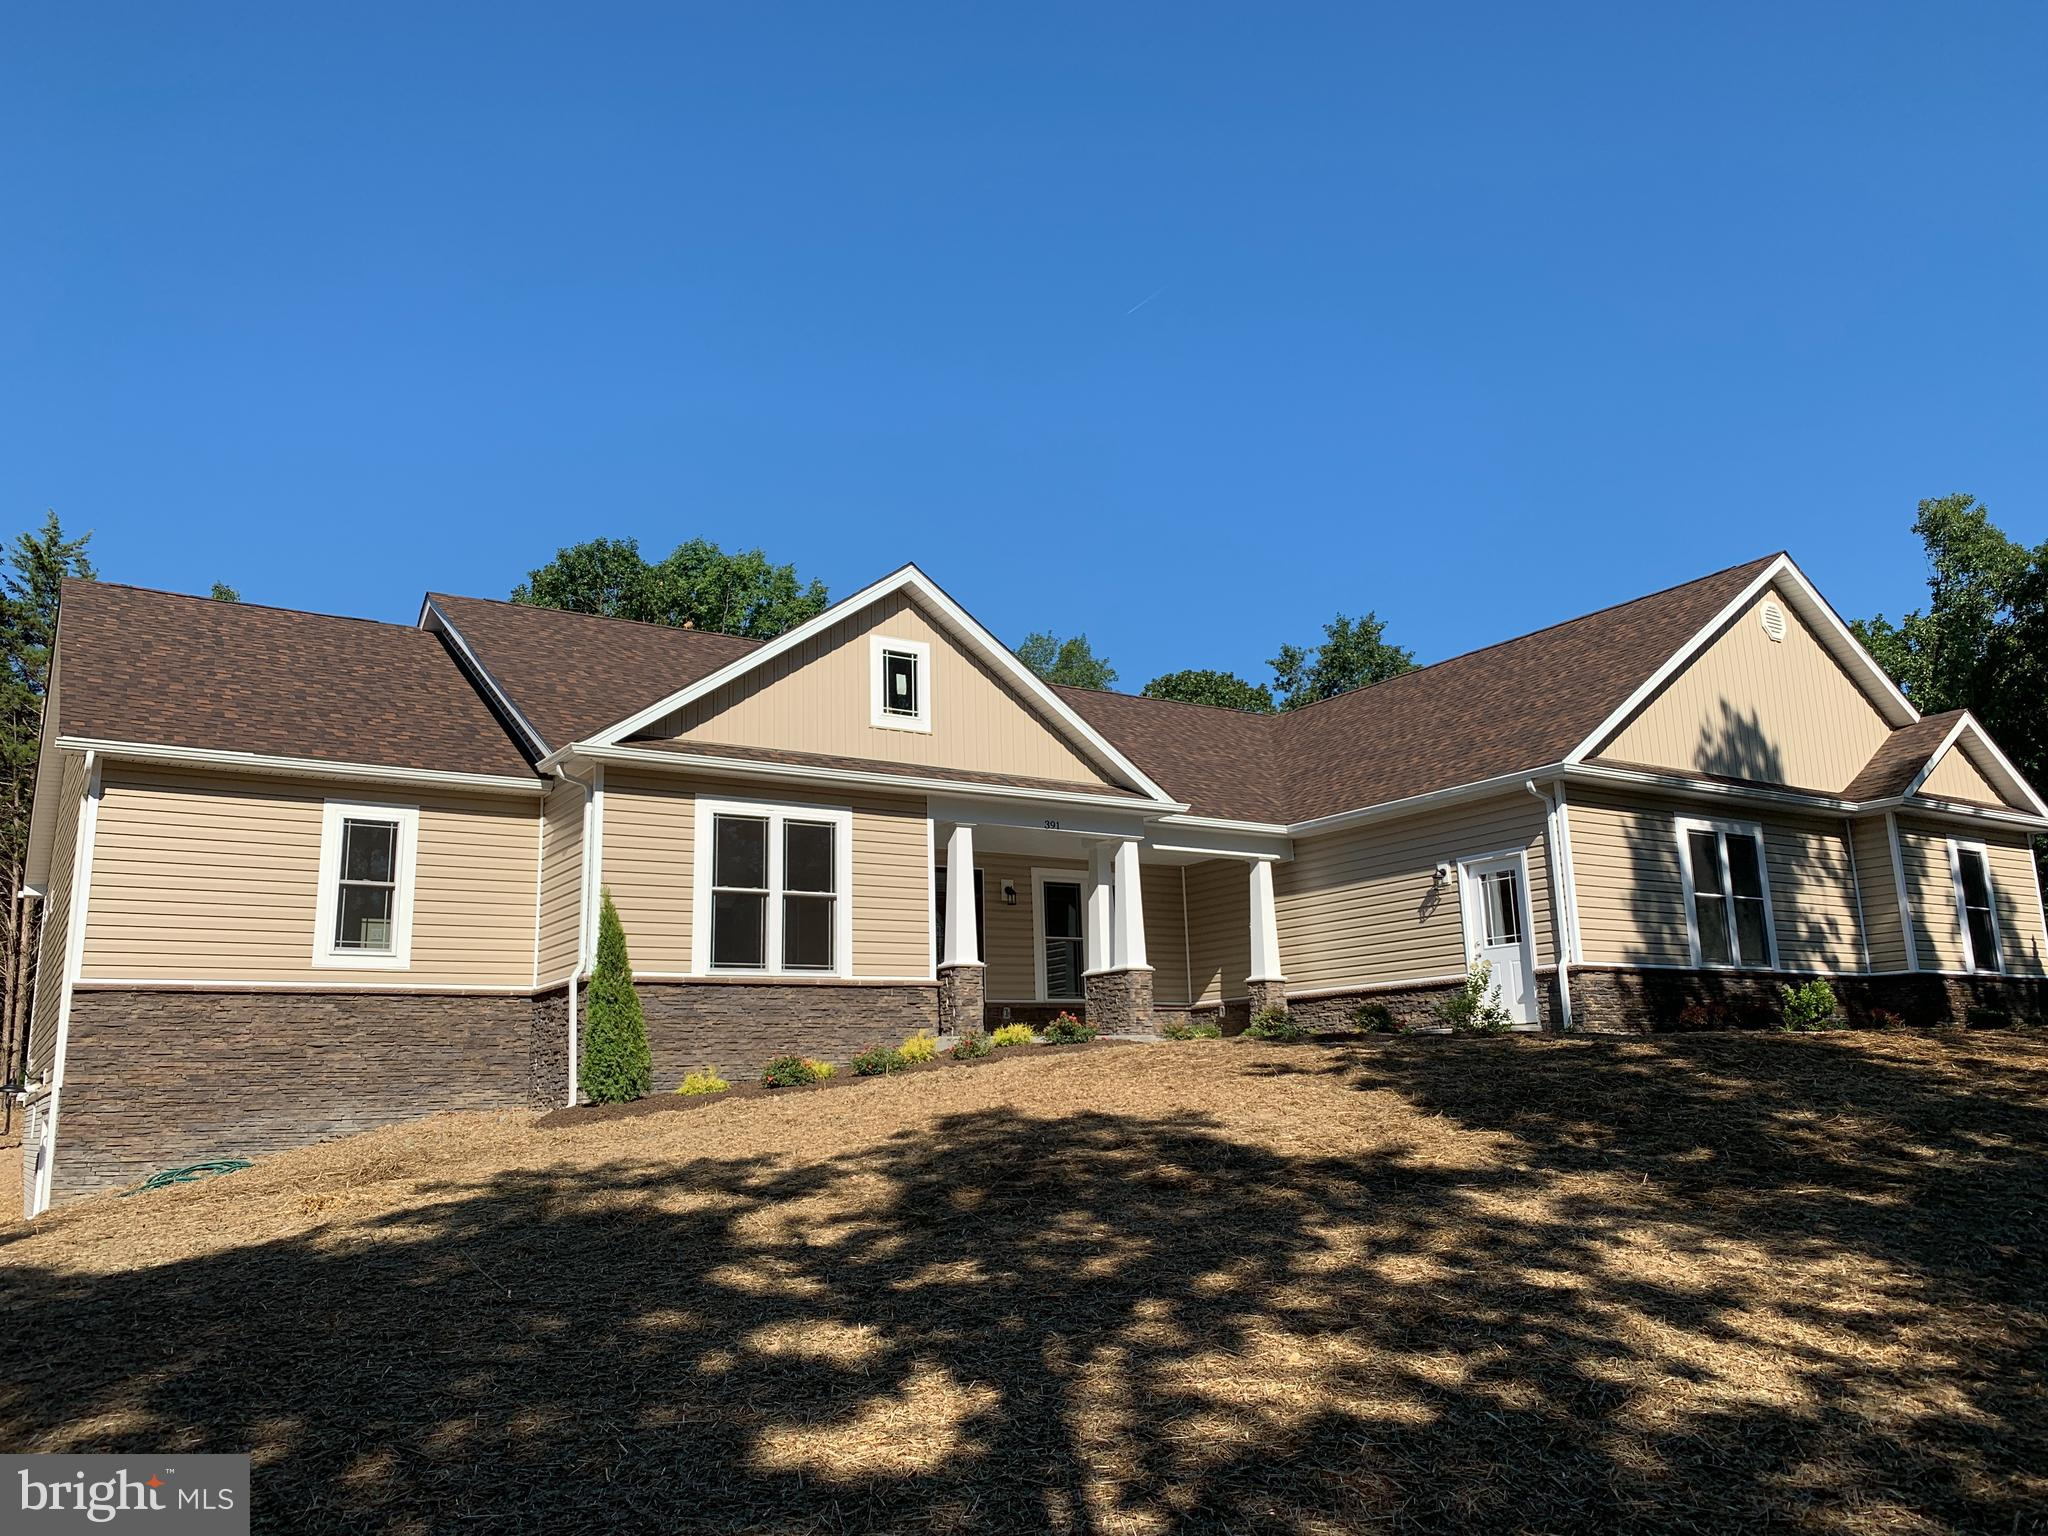 Another quality home offered by H&H Builders Inc. 2.7 unrestricted  open lot with mountain views and